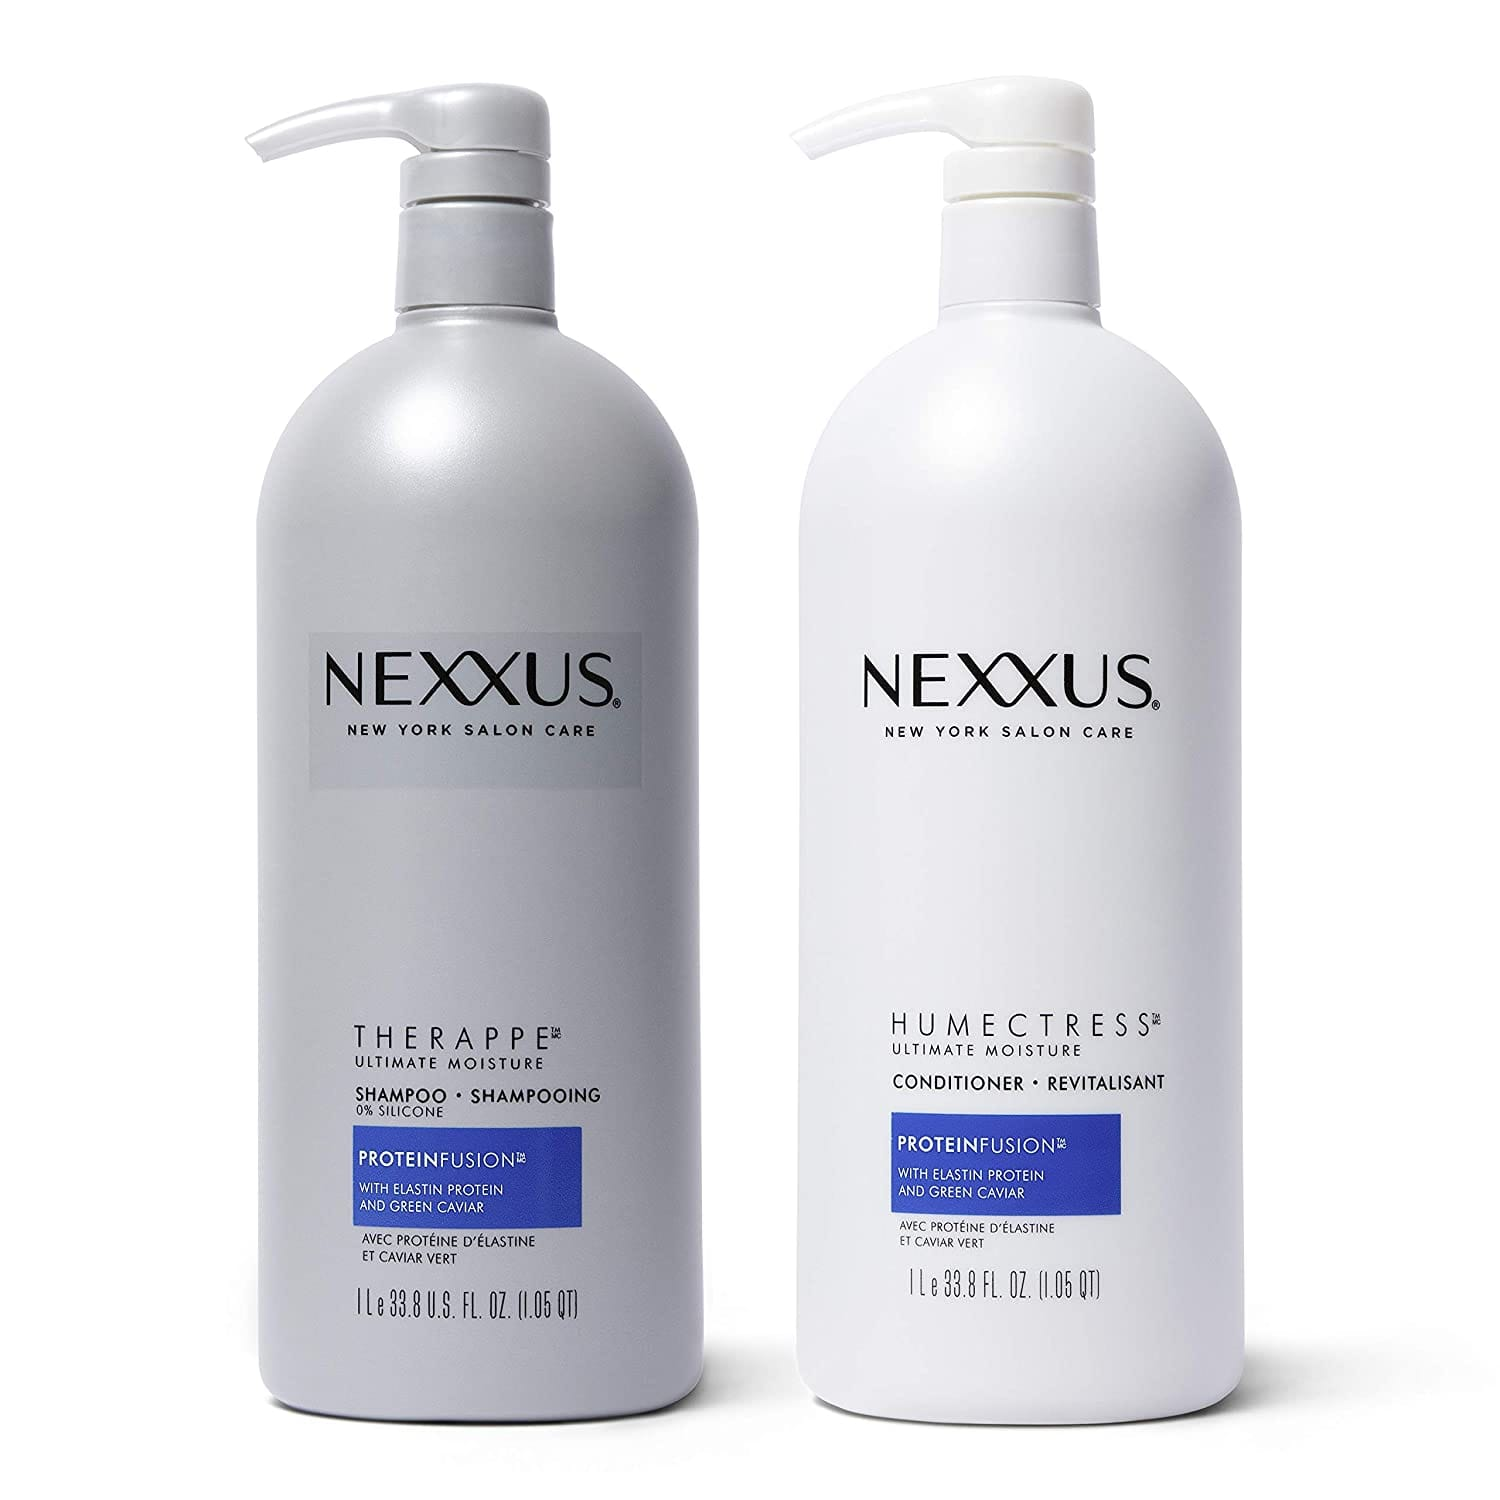 Nexxus Shampoo and Conditioner Therappe and Humectress 33.8 oz 2 Count - $20.99